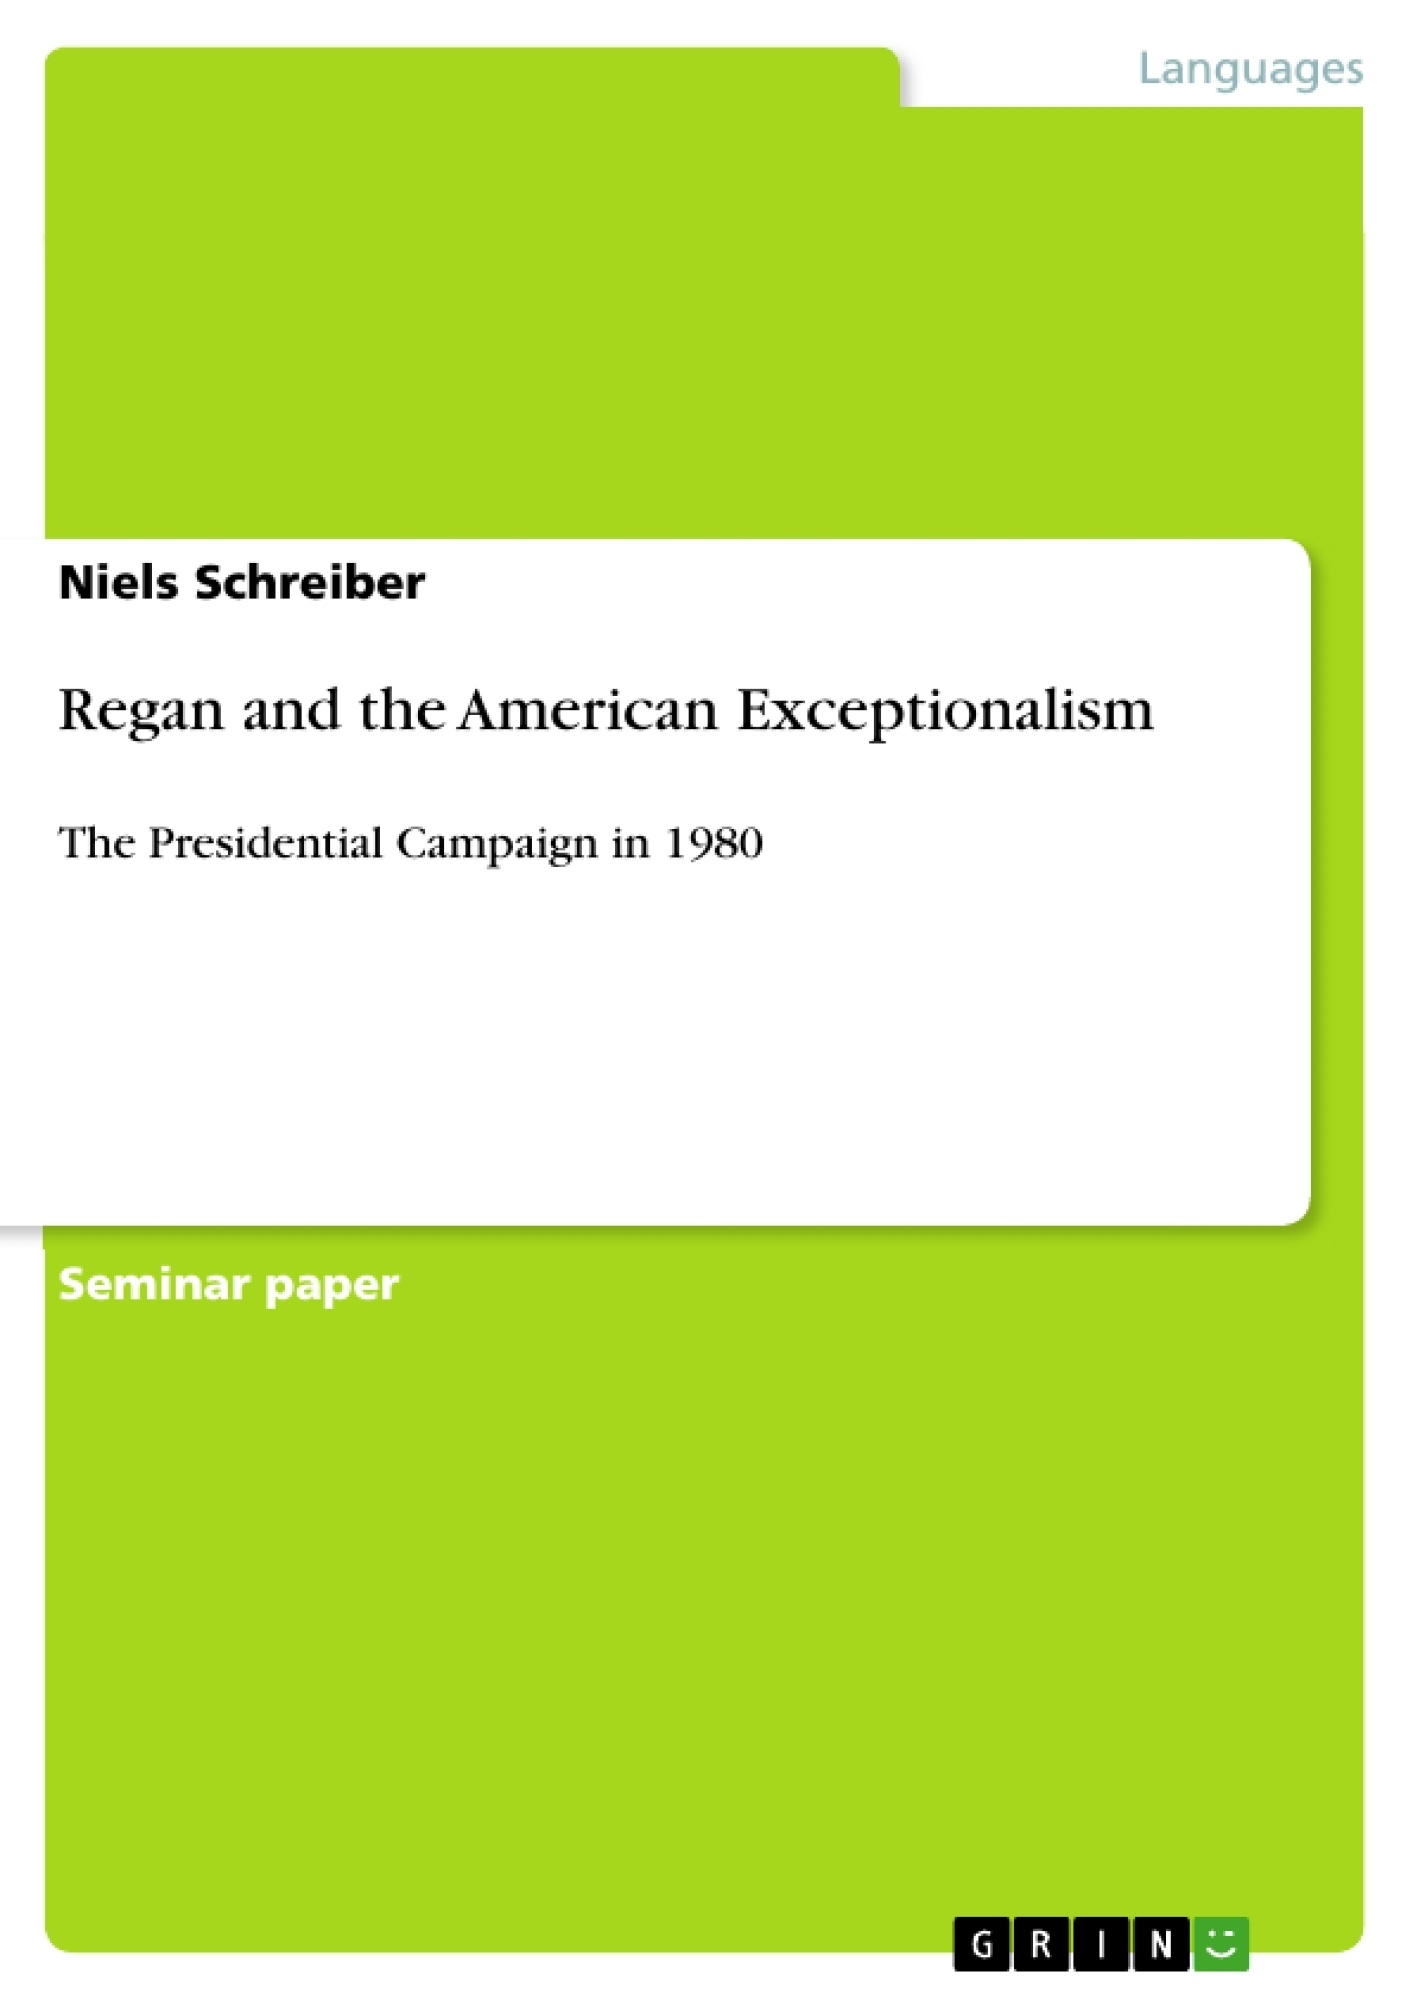 Title: Regan and the American Exceptionalism